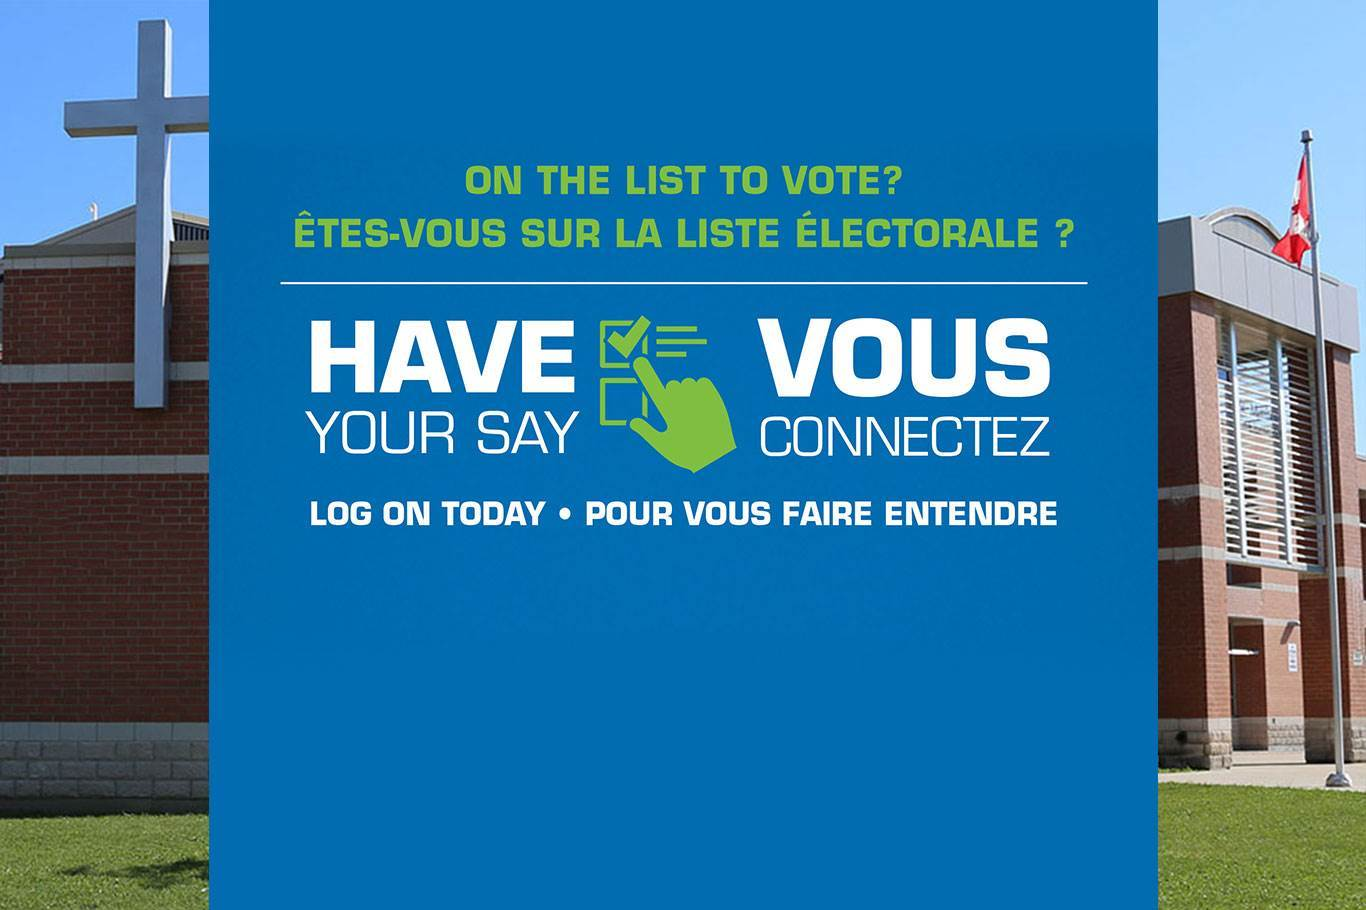 Banner Image for On October 22, cast your vote for your Catholic school trustee